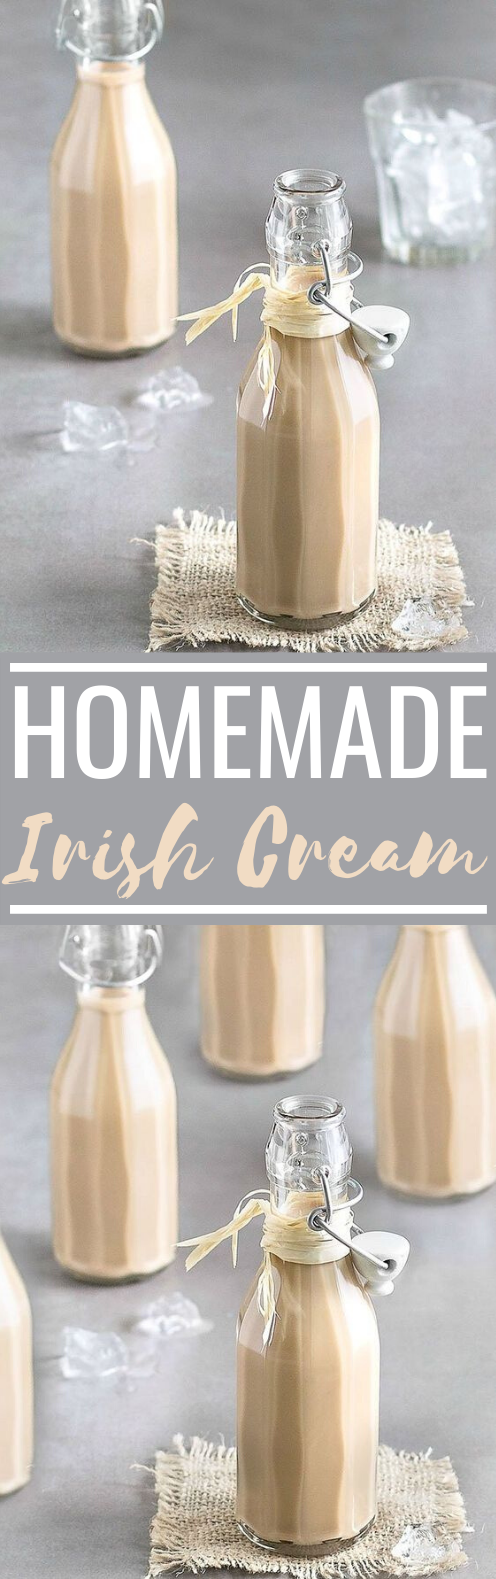 Homemade Baileys Irish Cream #drinks #alcohol #cocktails #holiday #recipes